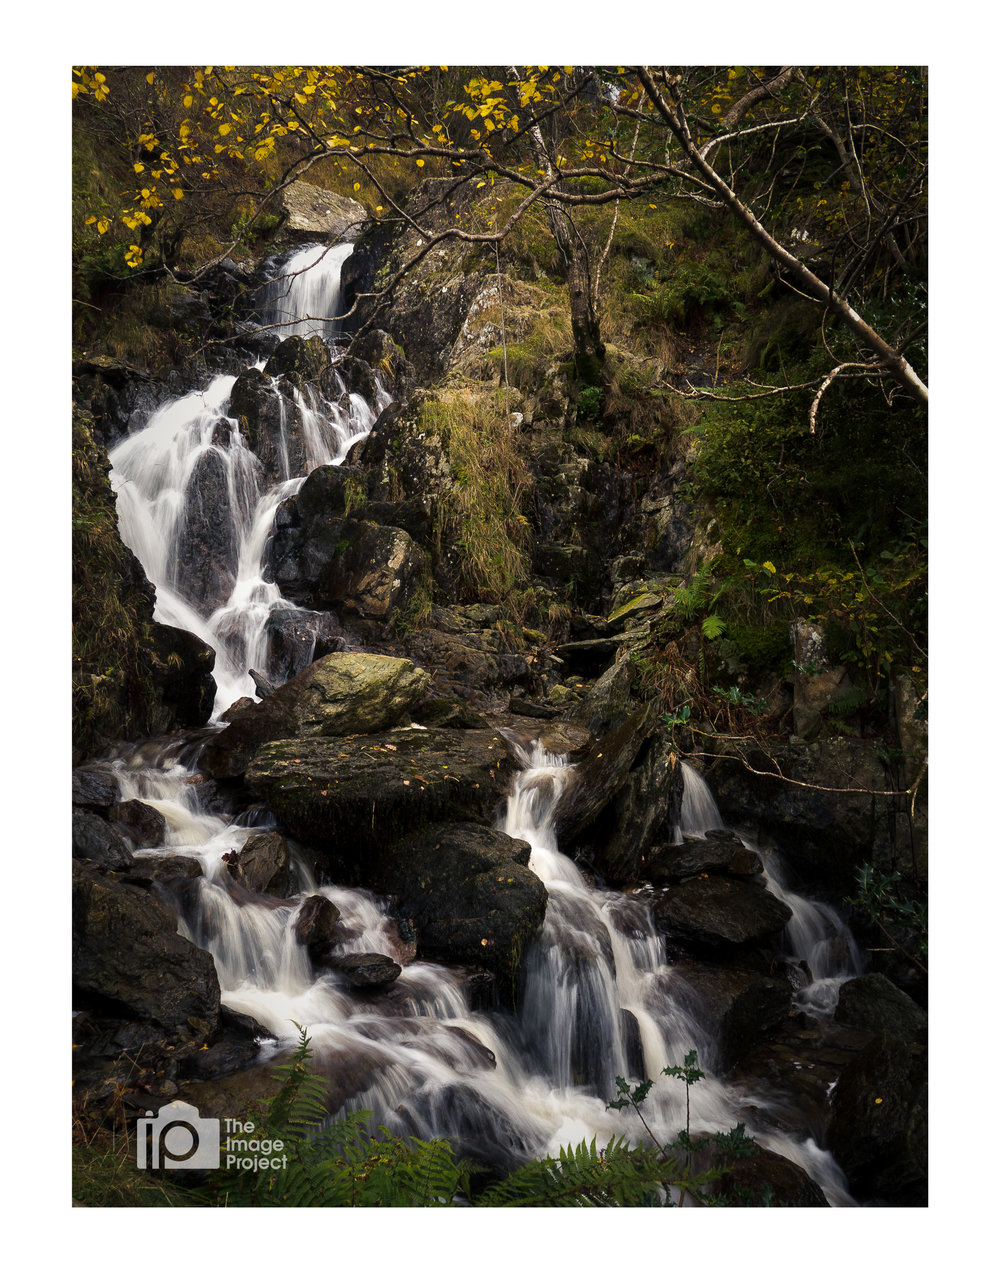 Small, unnamed falls near Brotherswater, Lake District.  Taken handheld at 1/8th sec, f/7.1